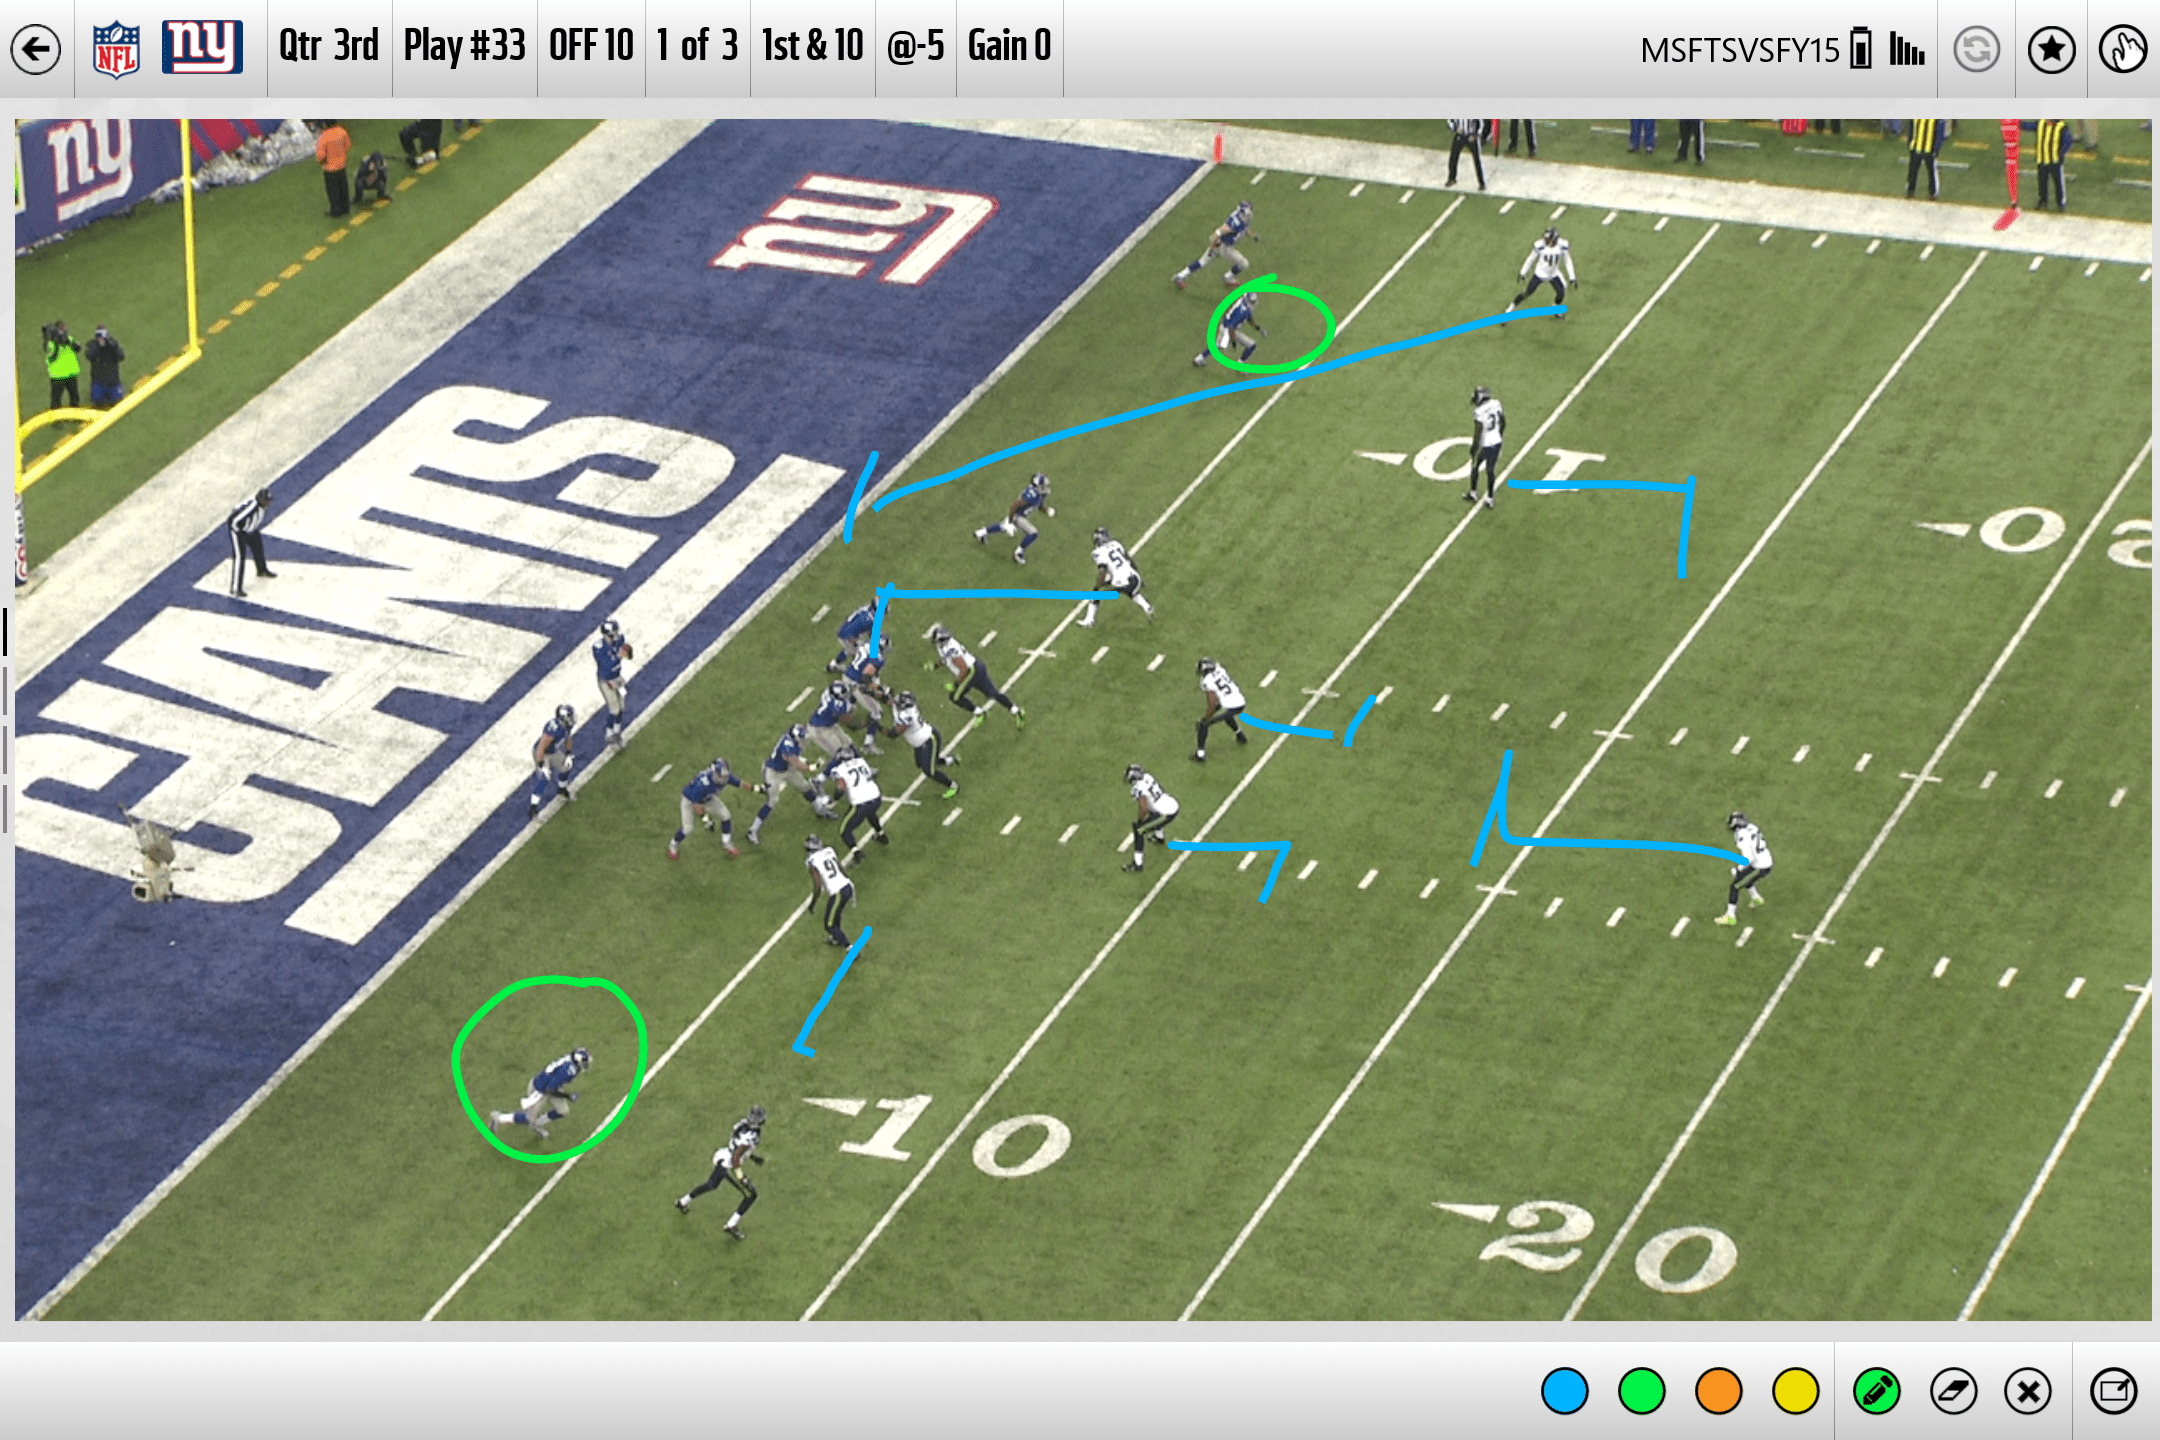 The Sideline Viewing System for NFL teams on the Surface Pro 3.